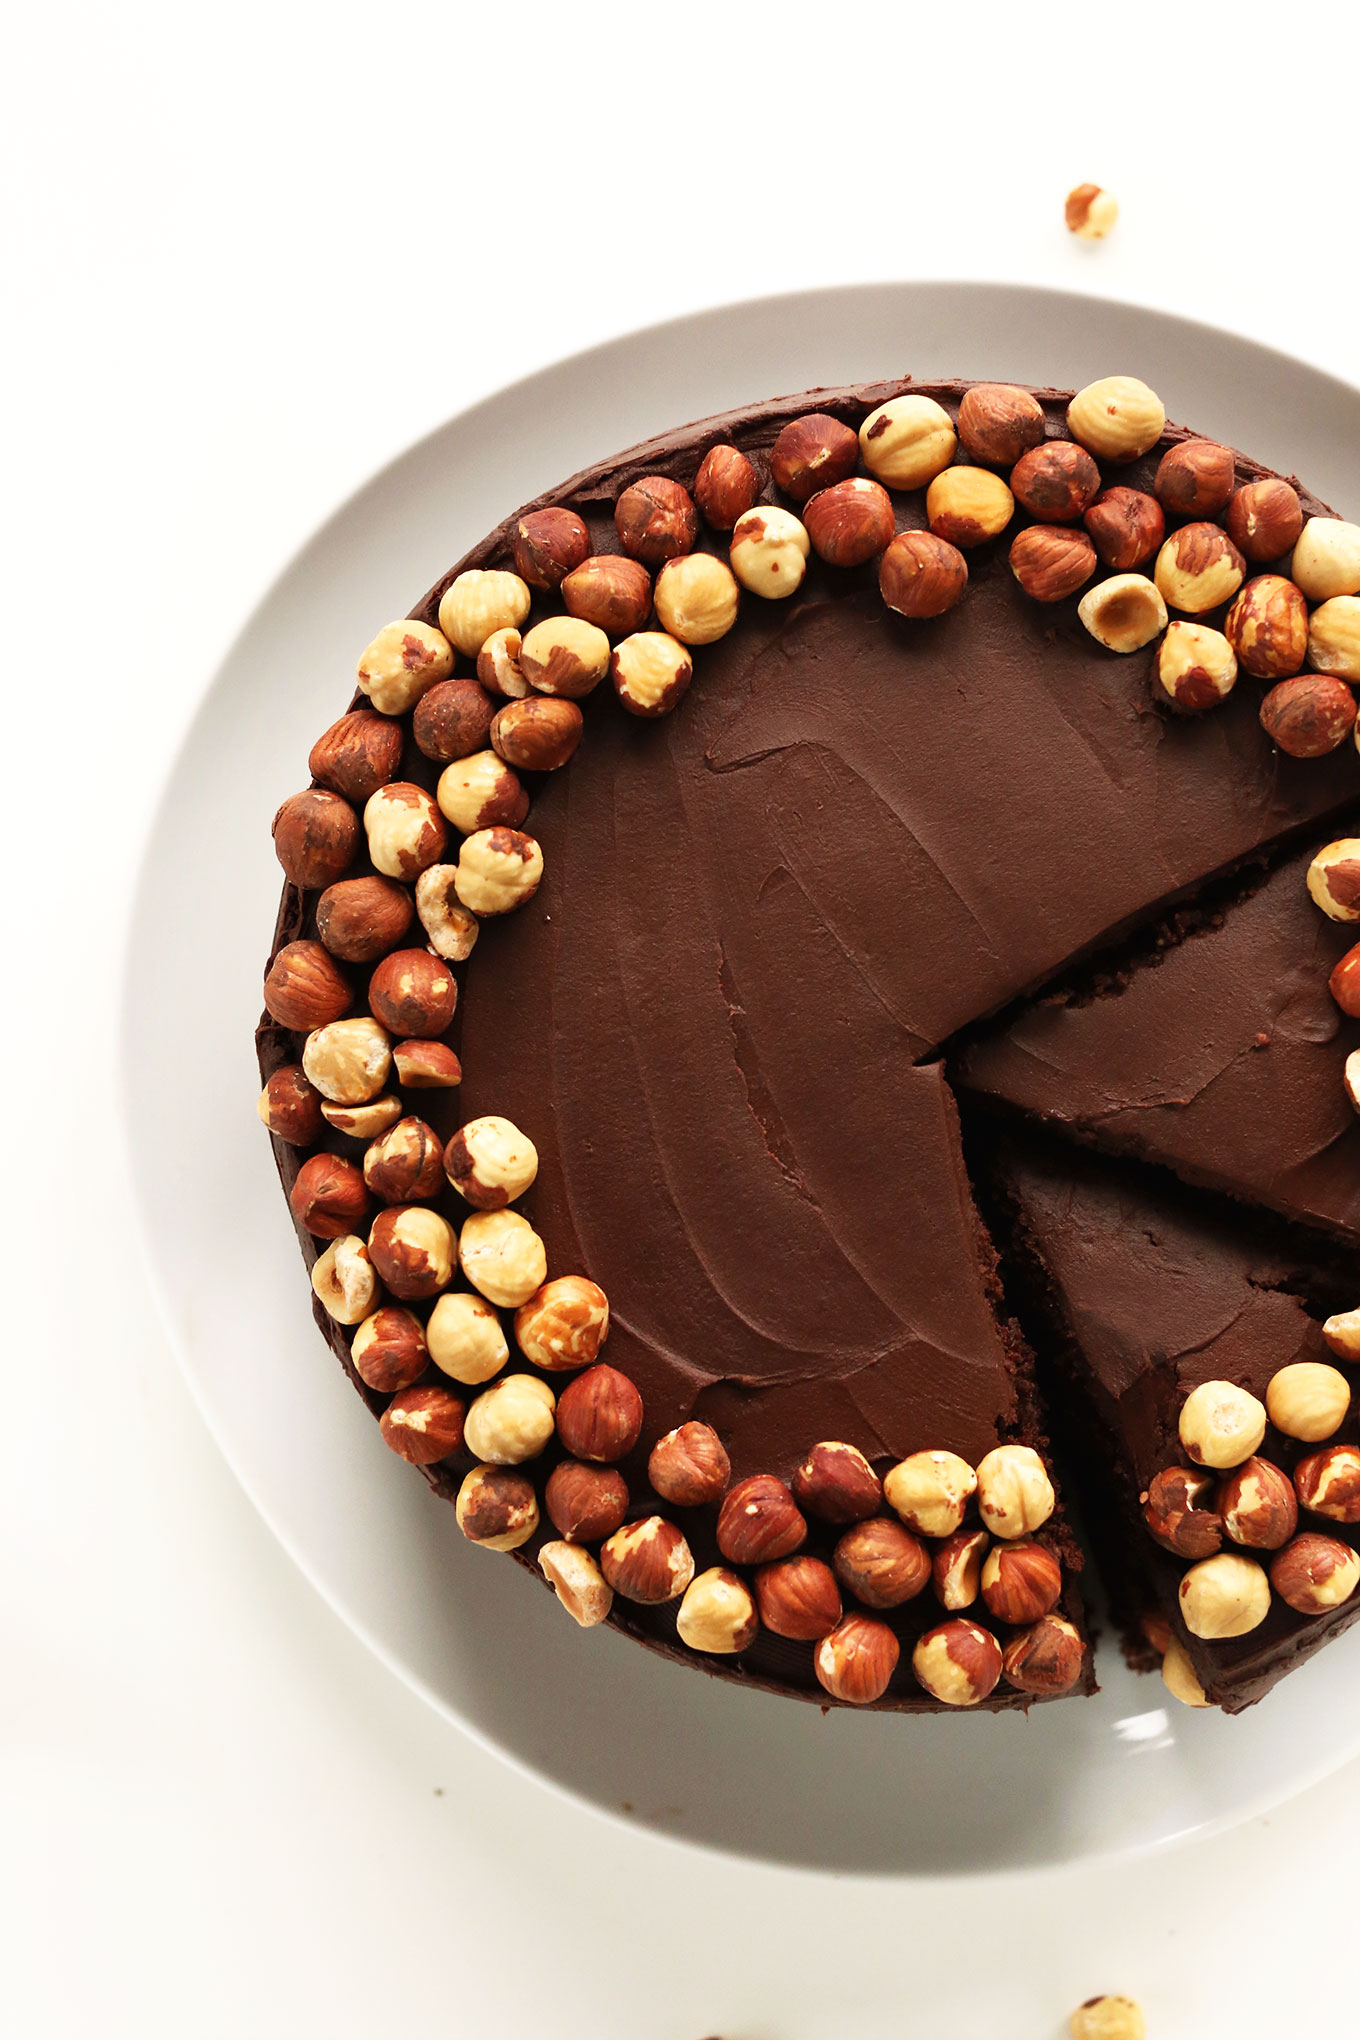 Partially Sliced Gluten Free Vegan Chocolate Hazelnut Cake